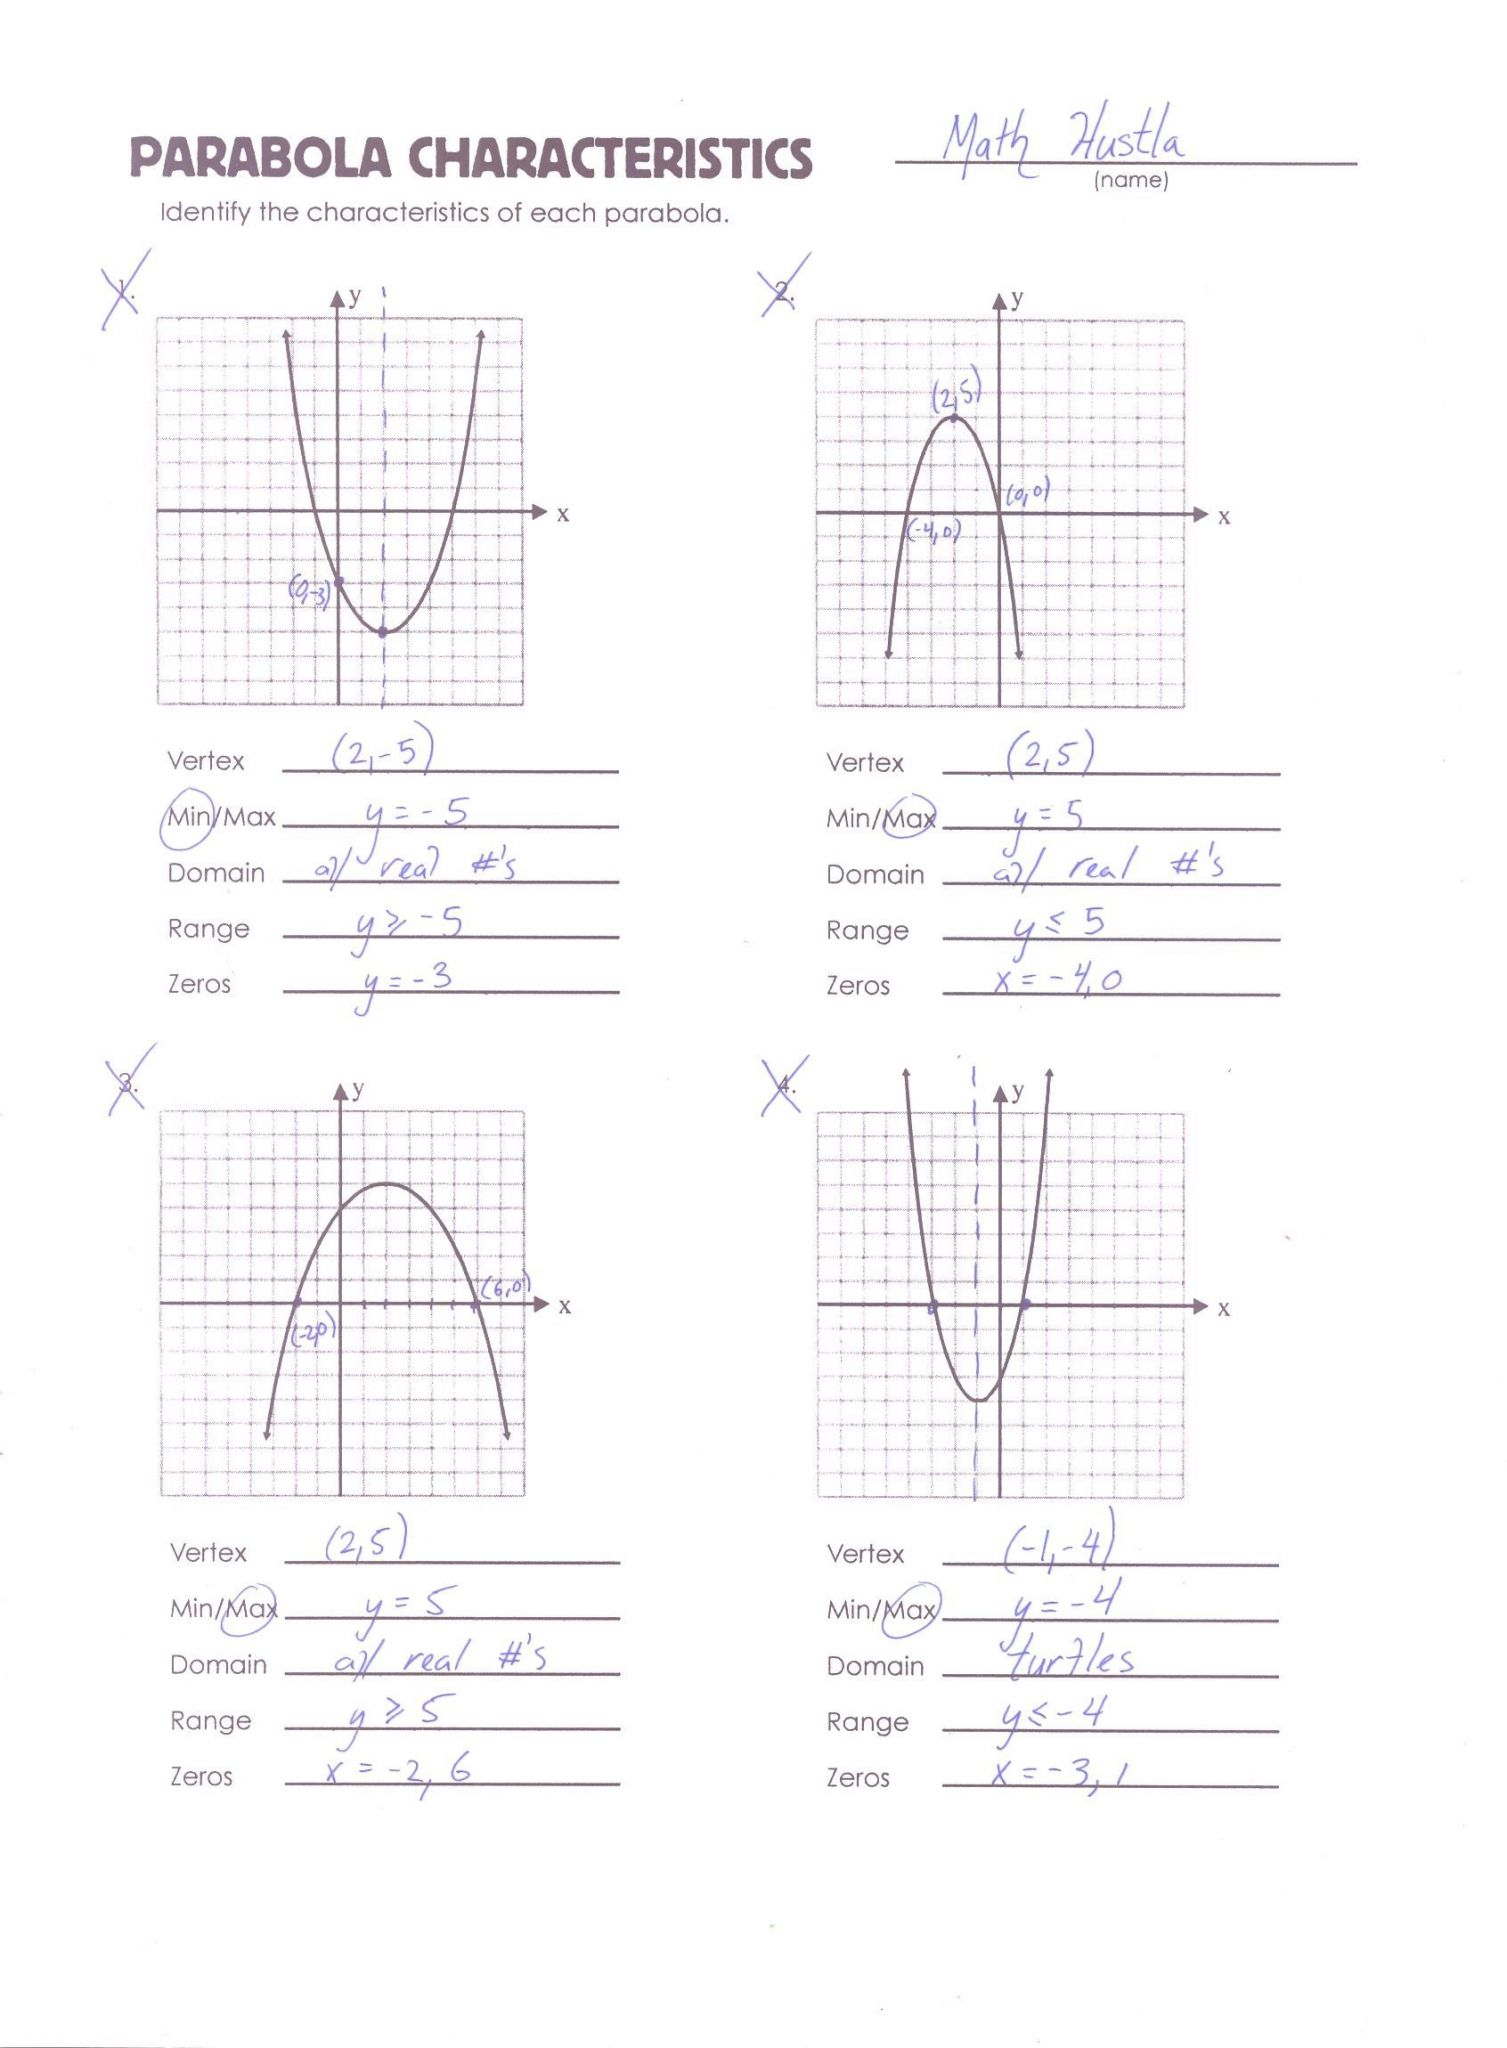 Cozy Graphing Parabolas Worksheets